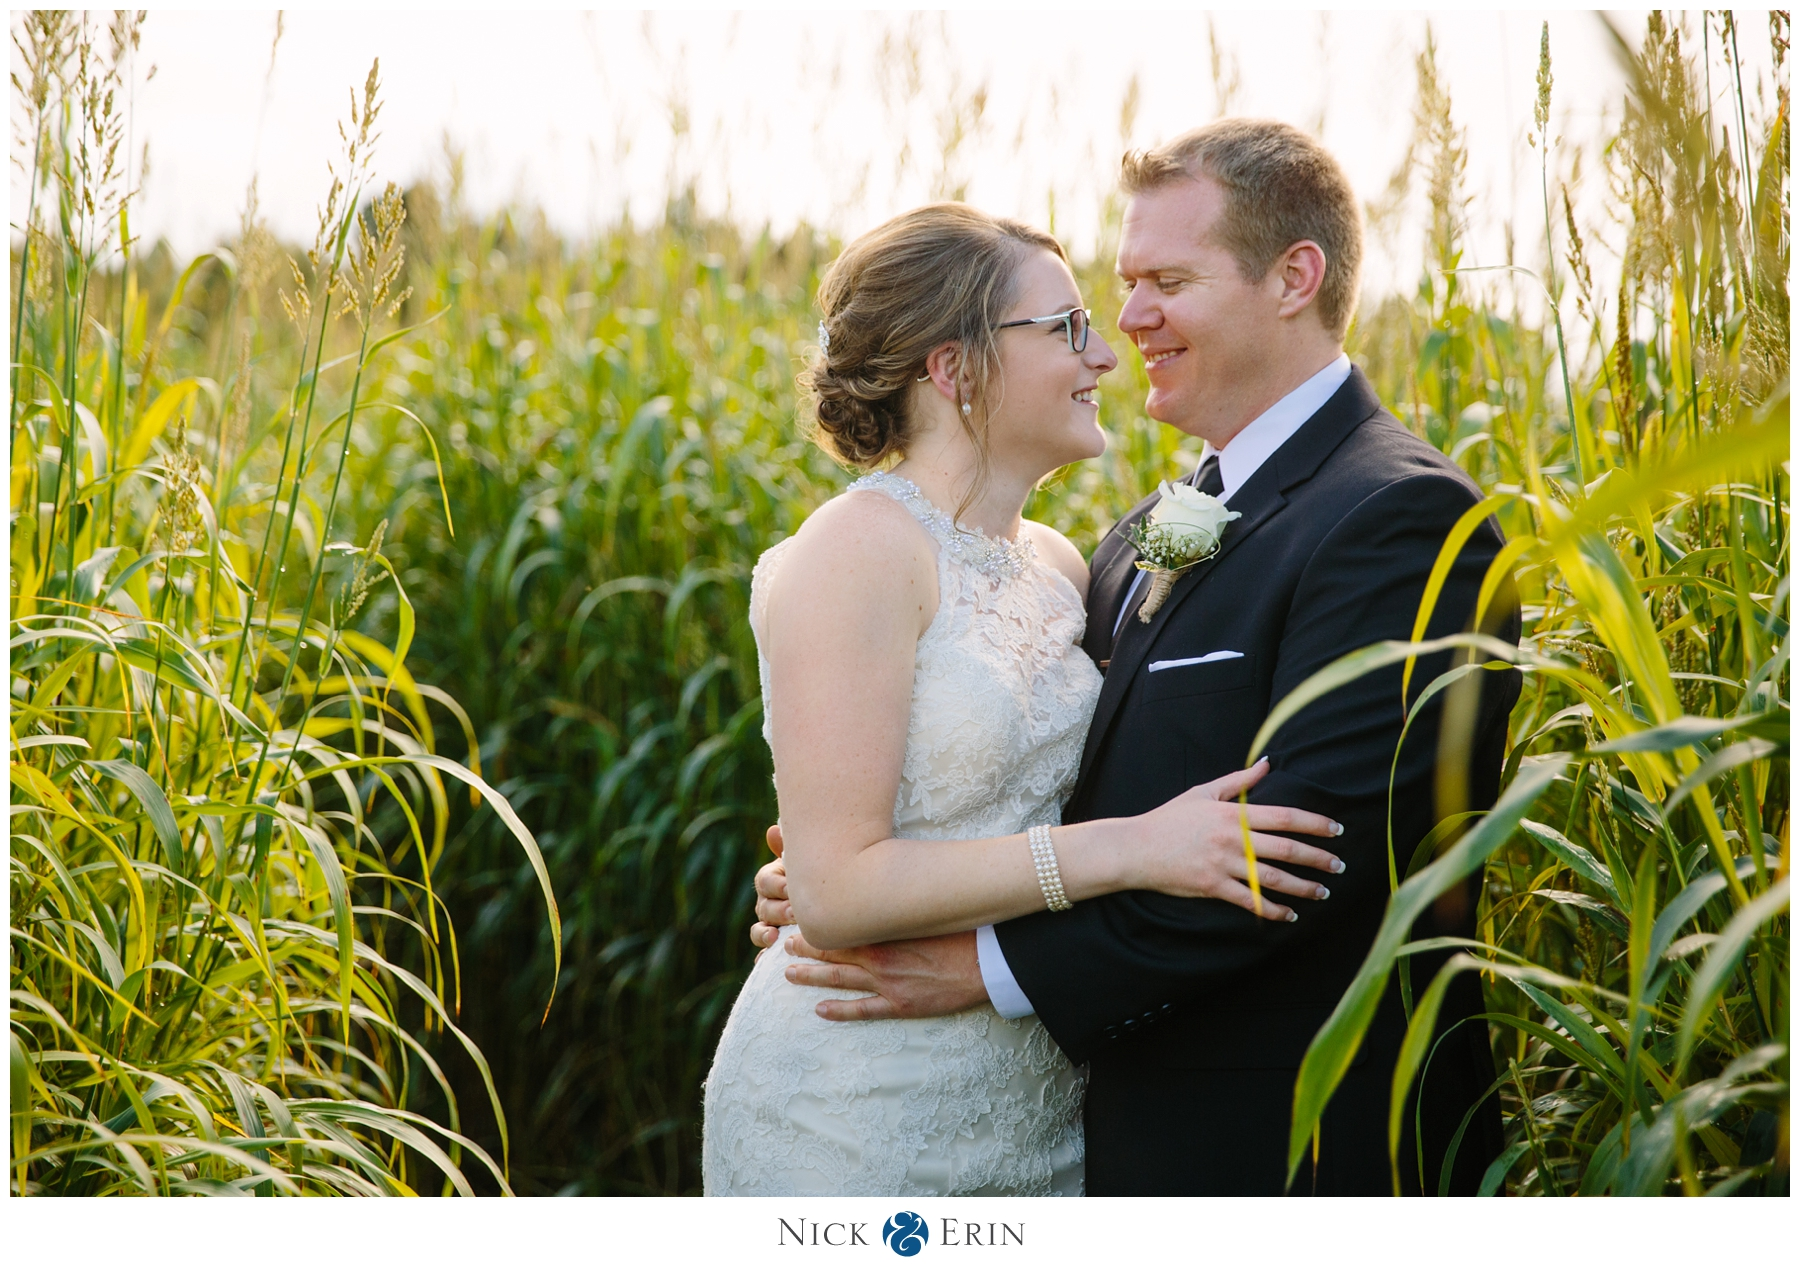 donner_photography_iowa-wedding_katie-chris_0027